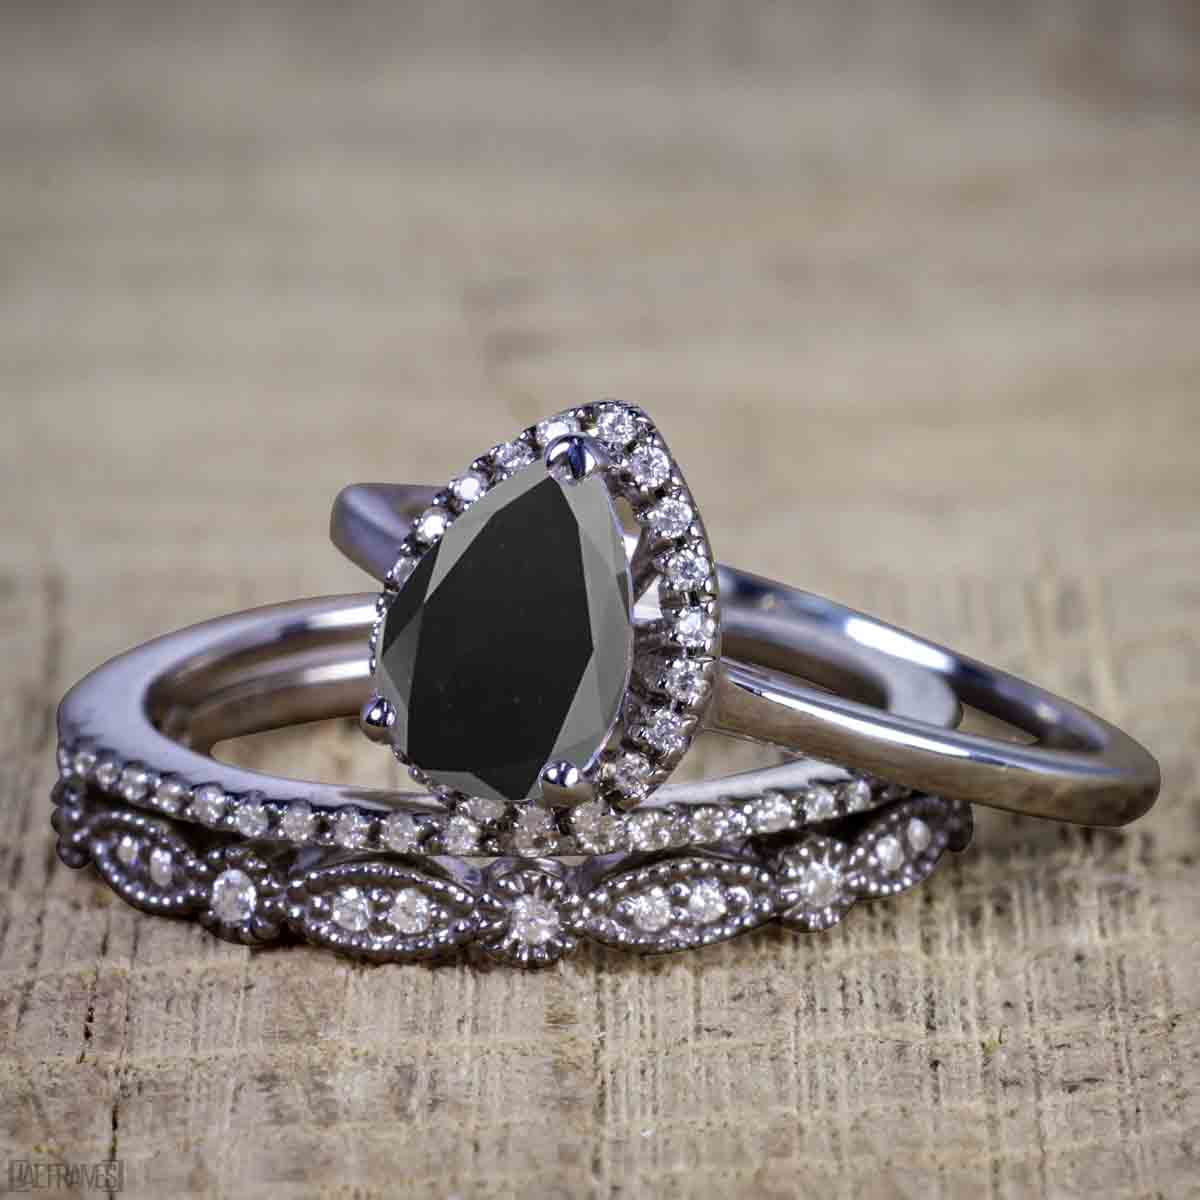 Affordable 1.50 Carat Pear cut Black Diamond Antique Wedding Trio Ring Set in Black Gold